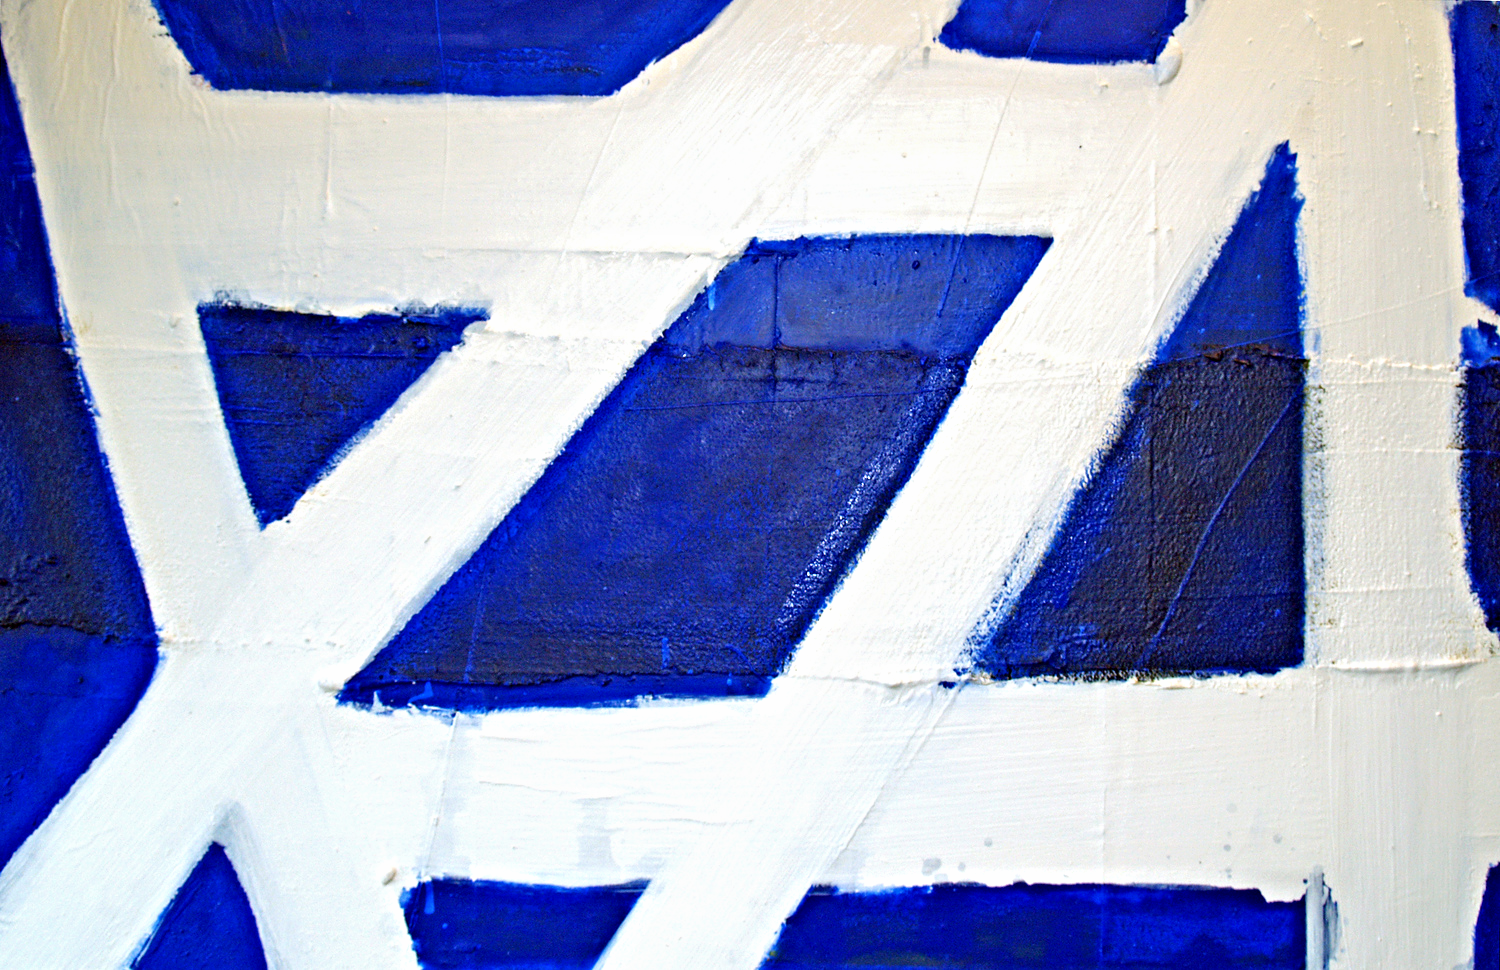 Disorder in White and Blue / Oil, enamel, paper, asphalt on canvas / 30 x 40 inches